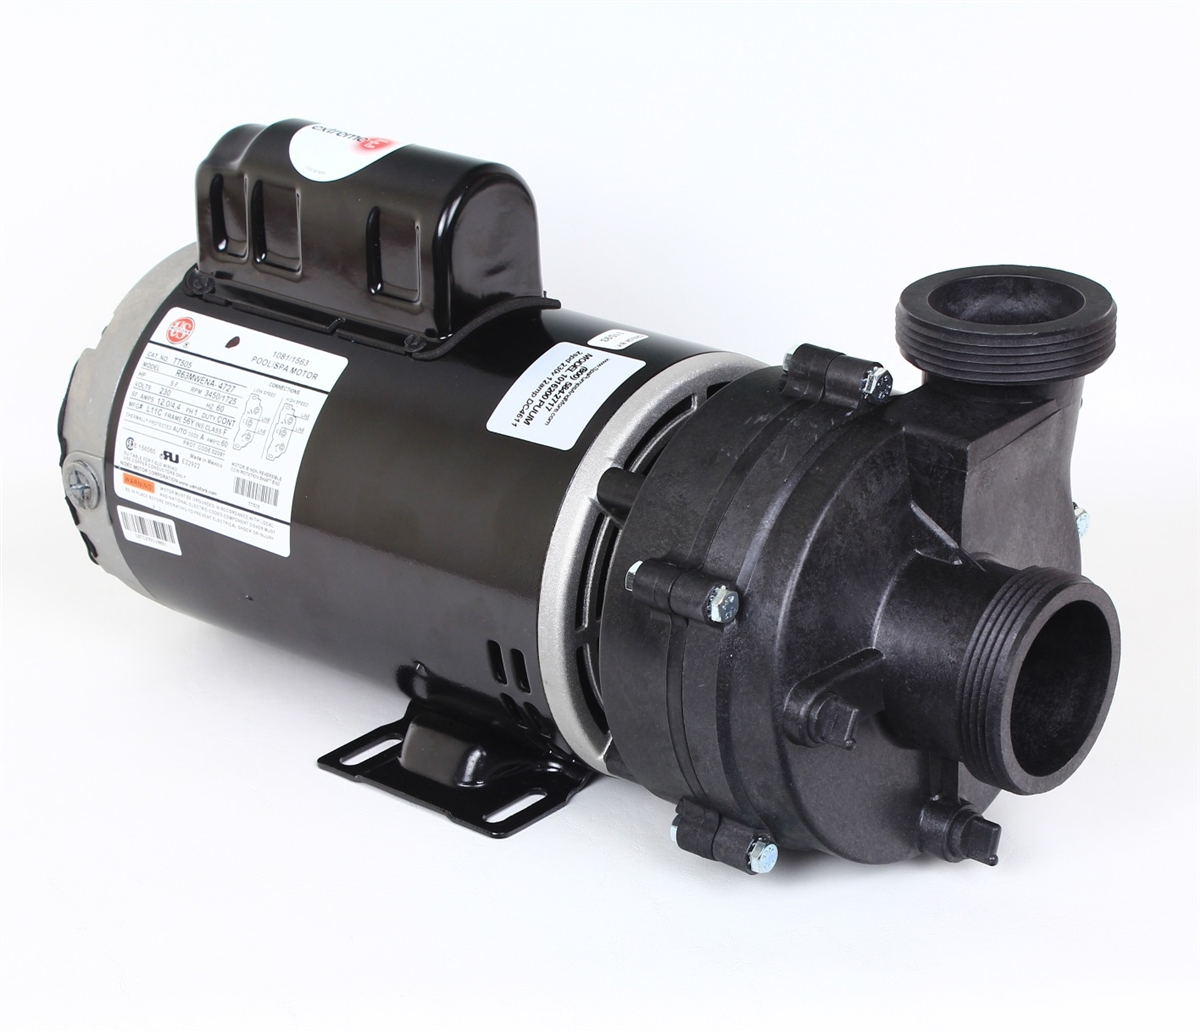 Puum2202582fr Spa Pump 230 Volt 8a 56 Frame Two Speed 2 Sd